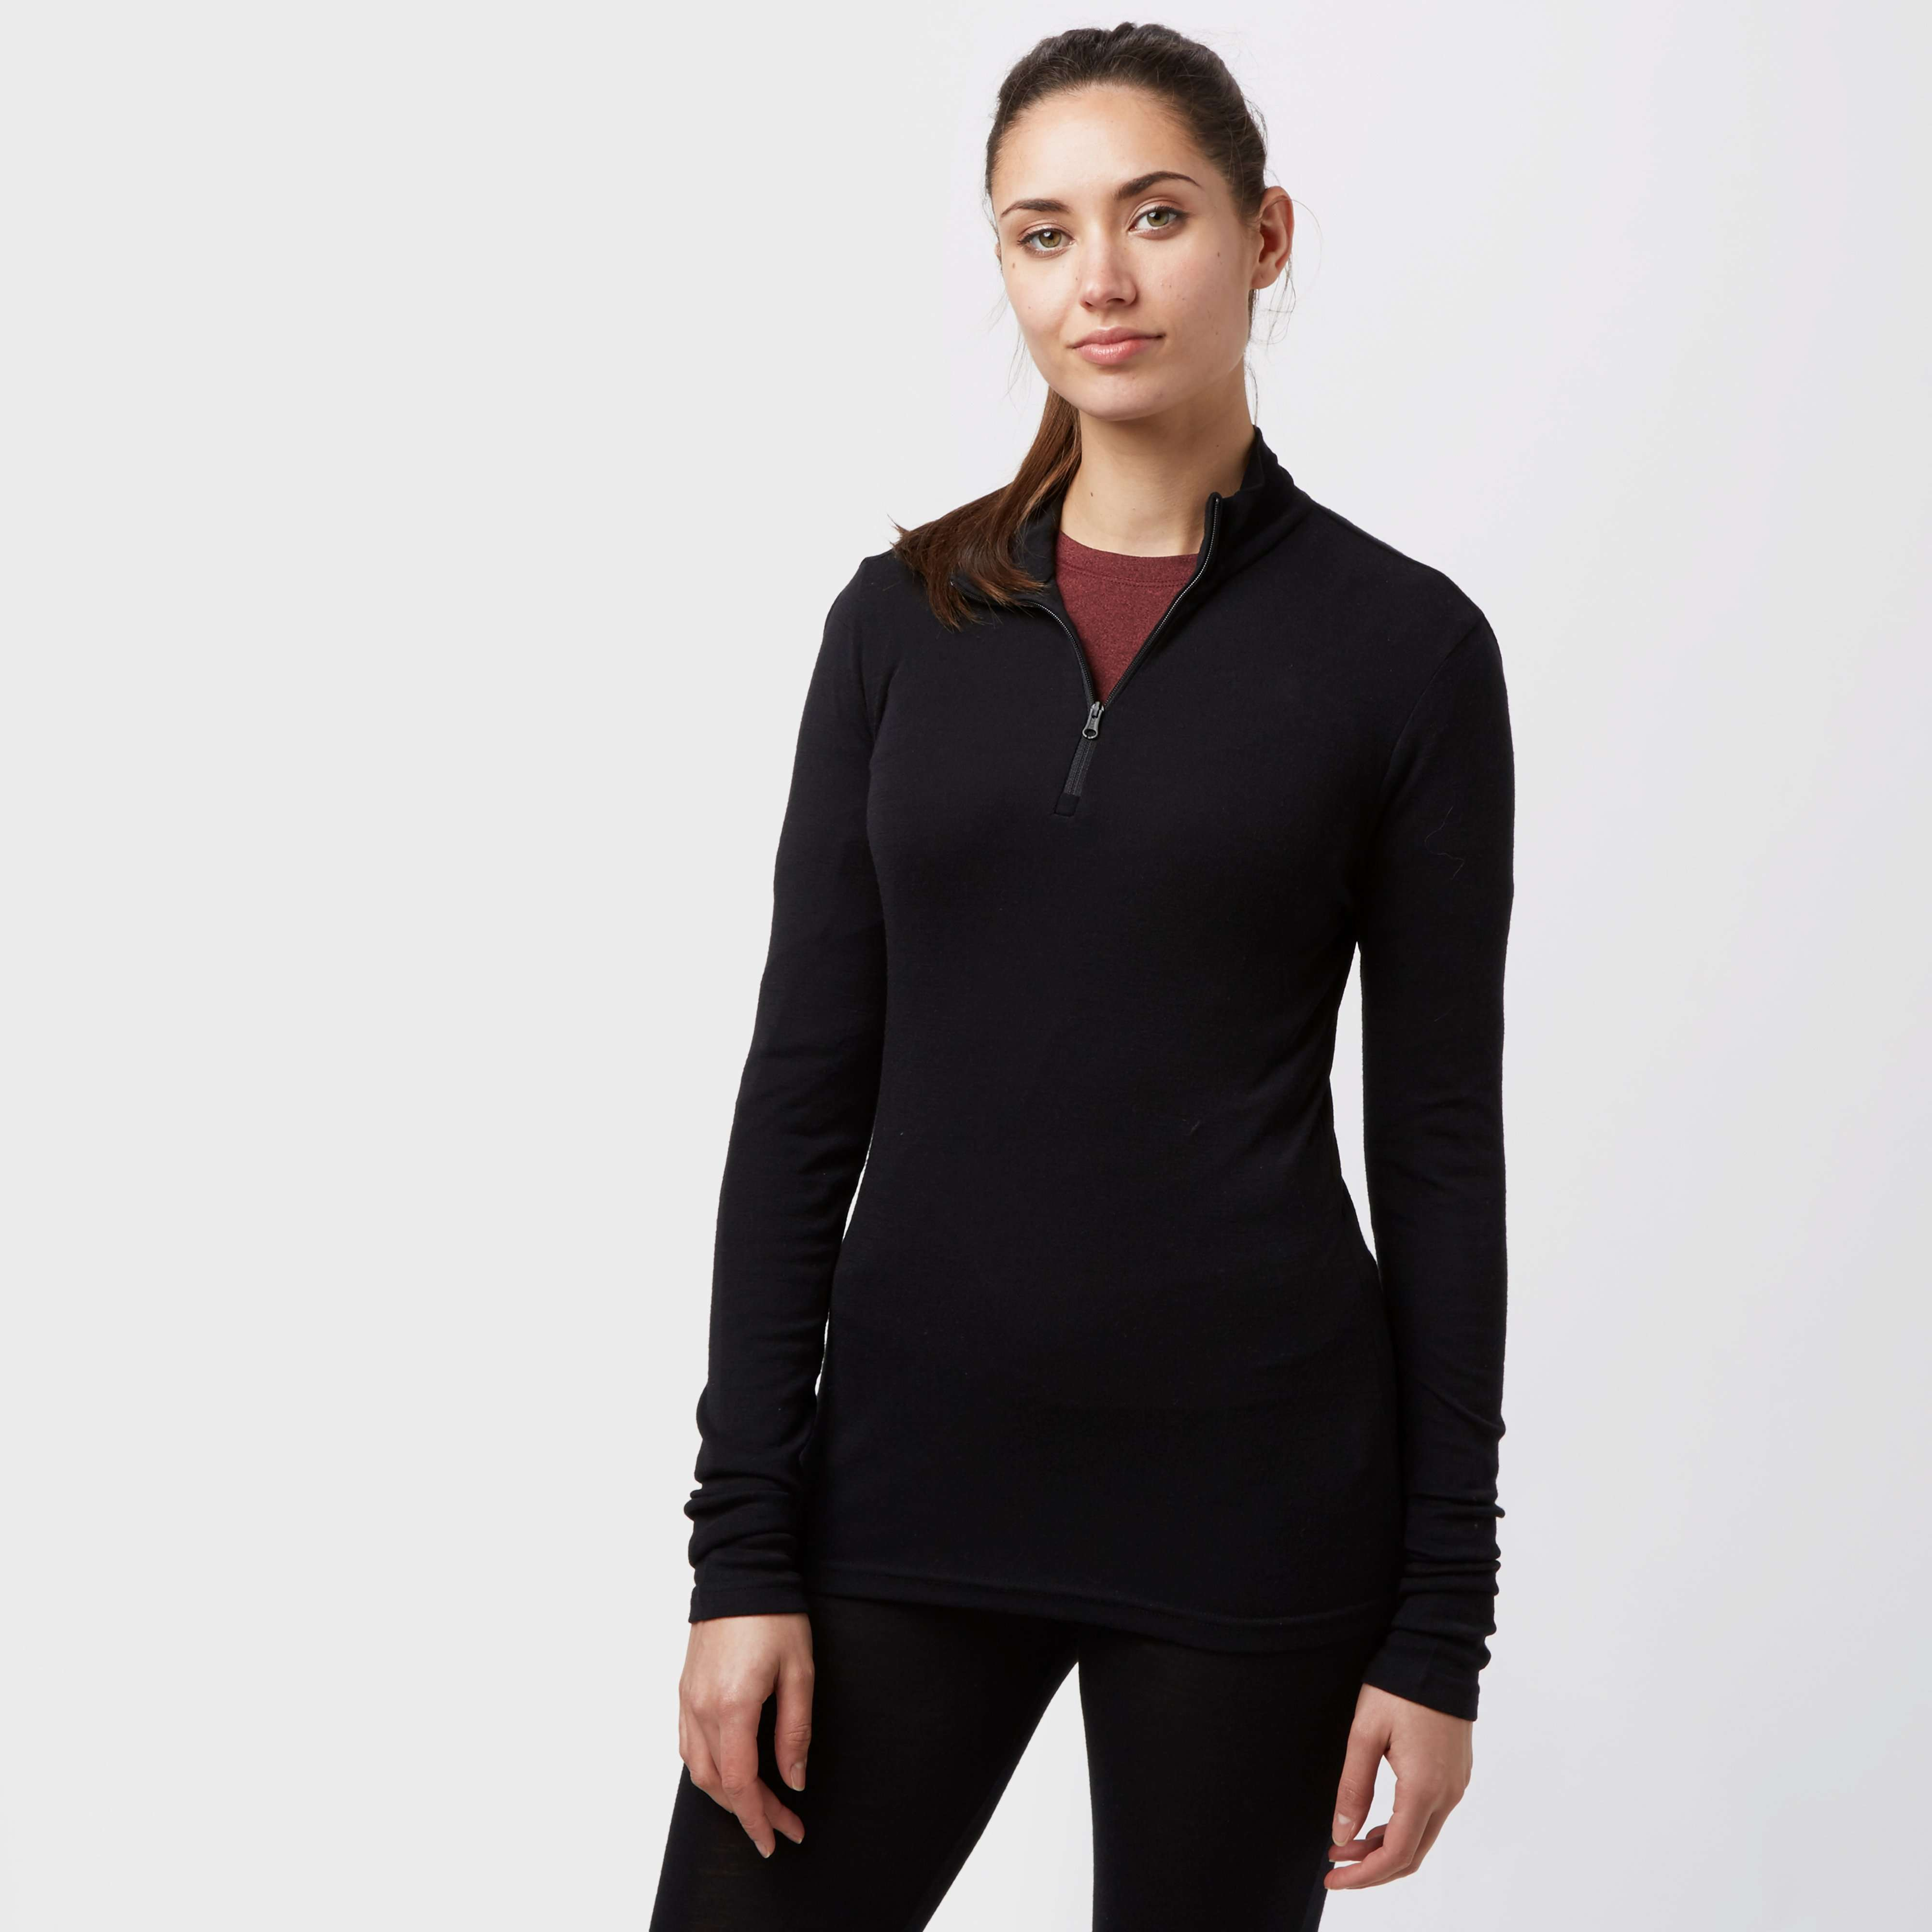 ICEBREAKER Women's Everyday Long Sleeve Half-Zip Baselayer